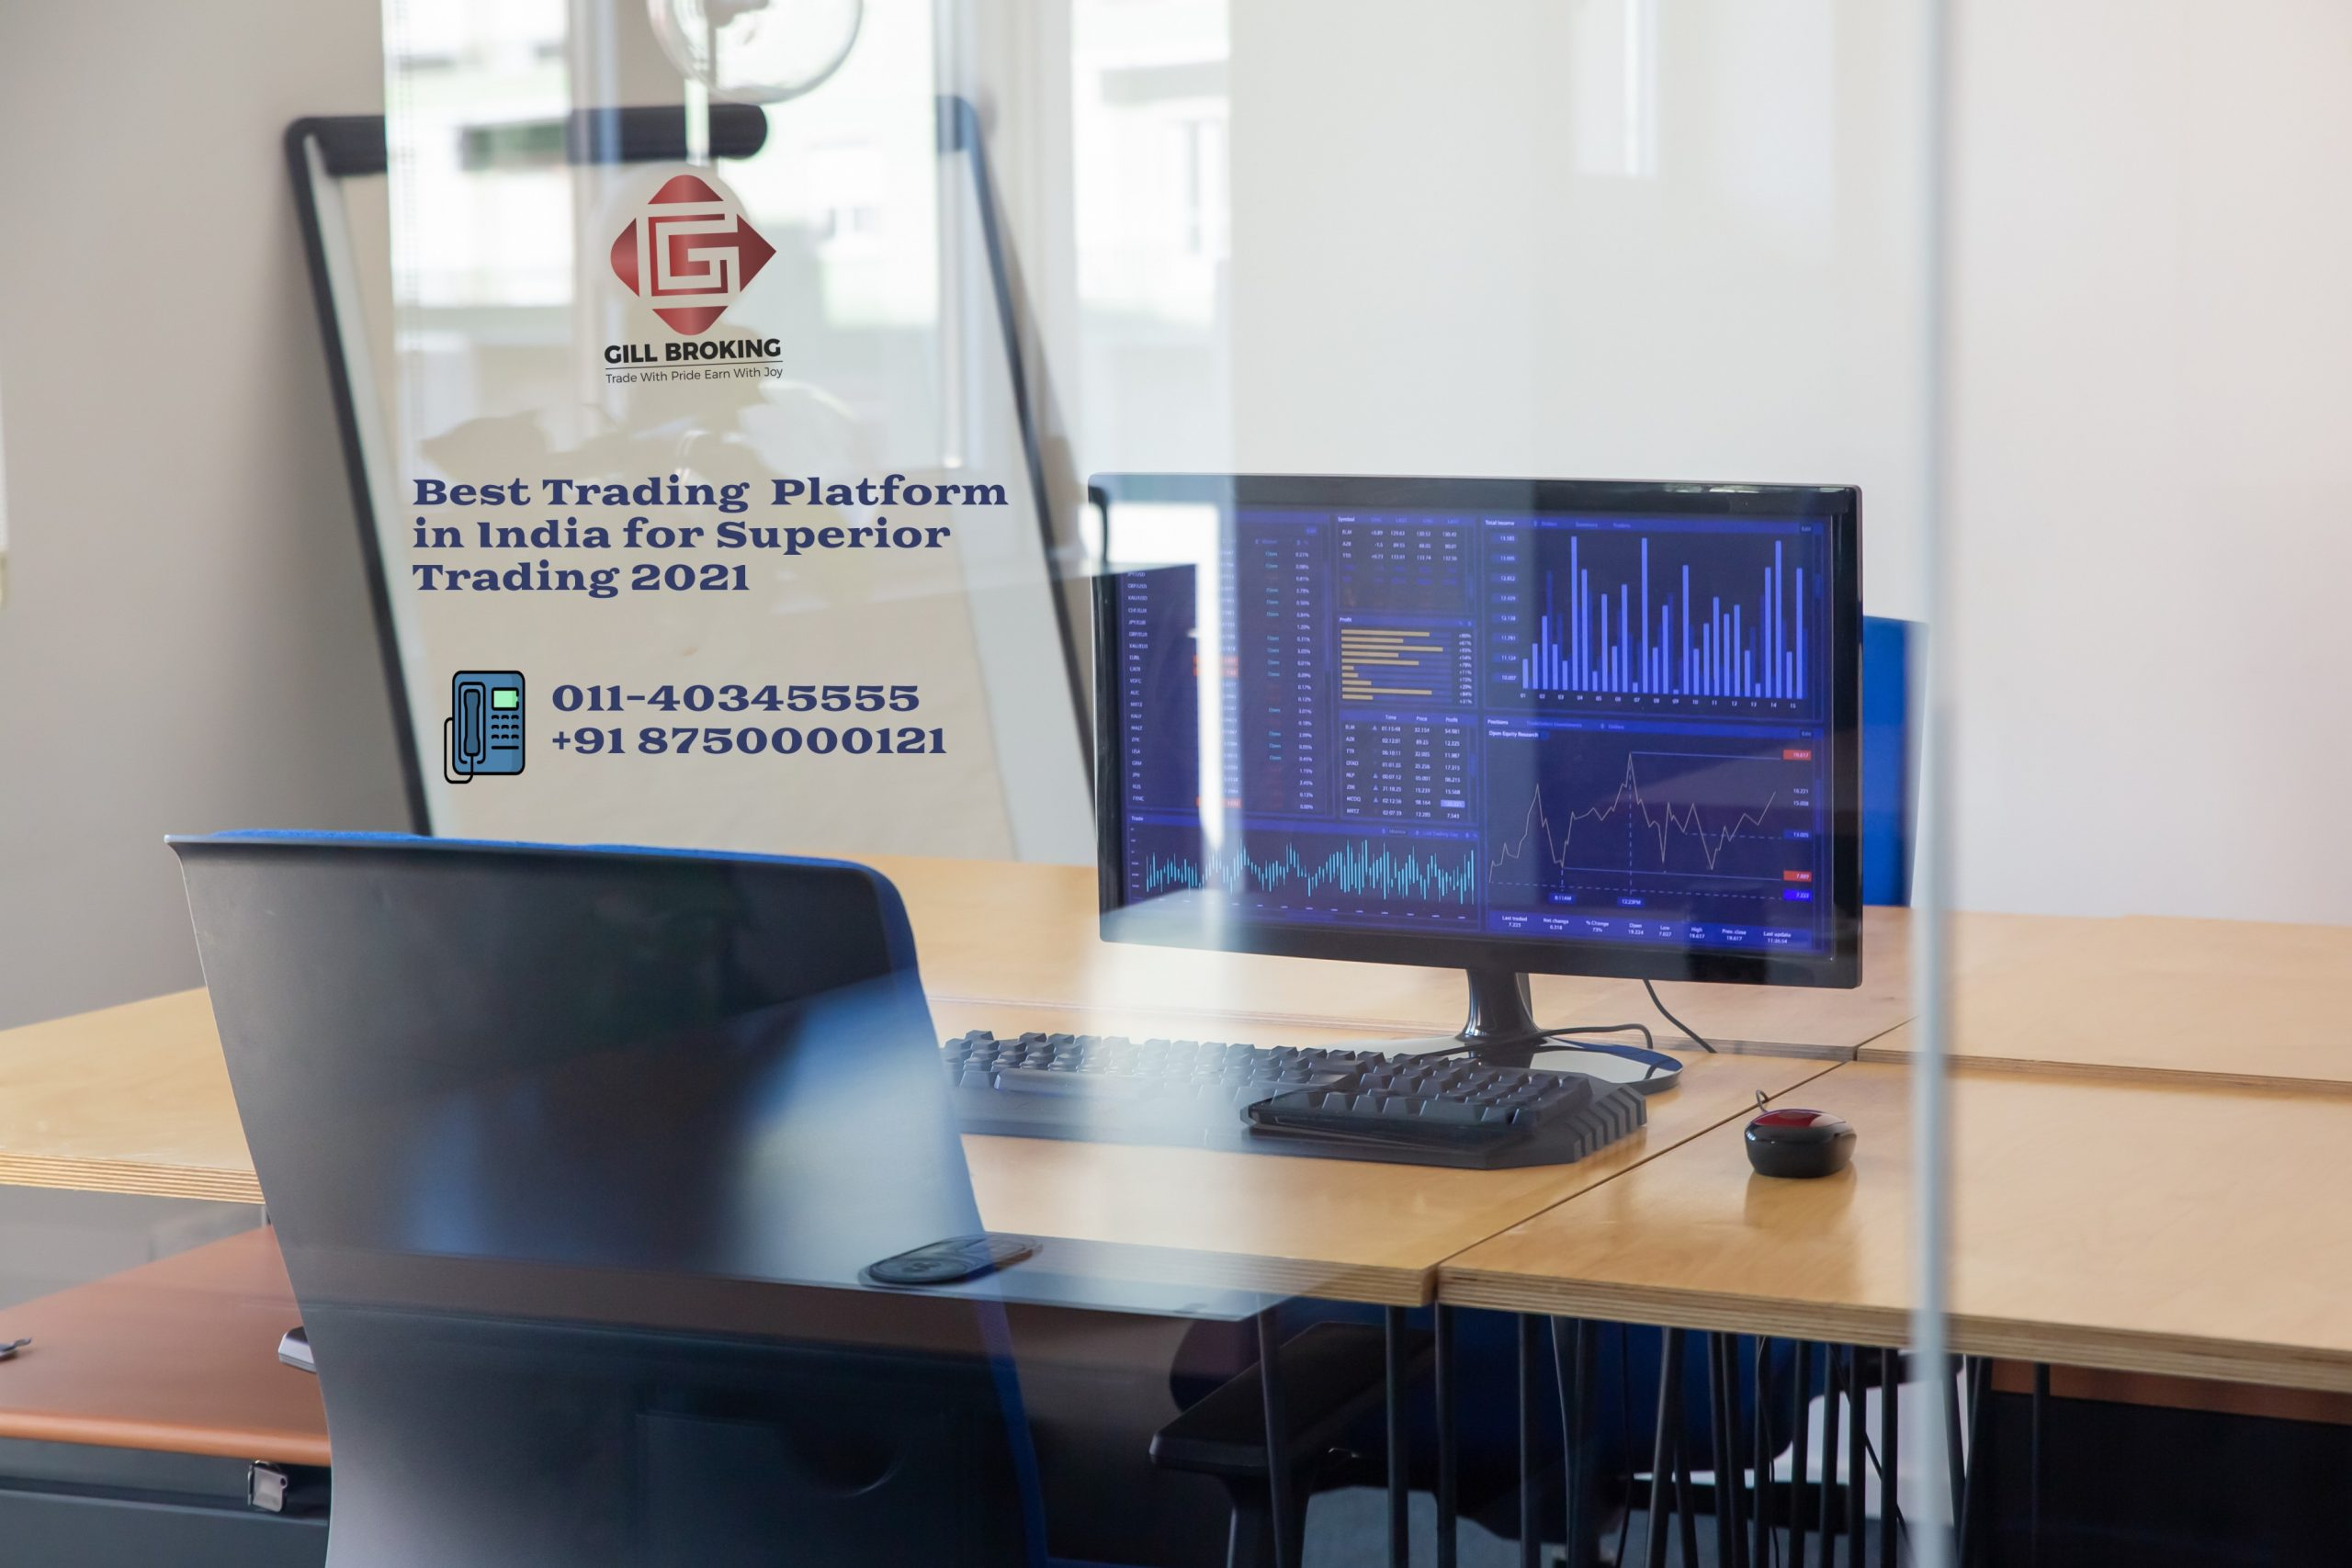 Best Trading Platform in India for Superior Trading 2021